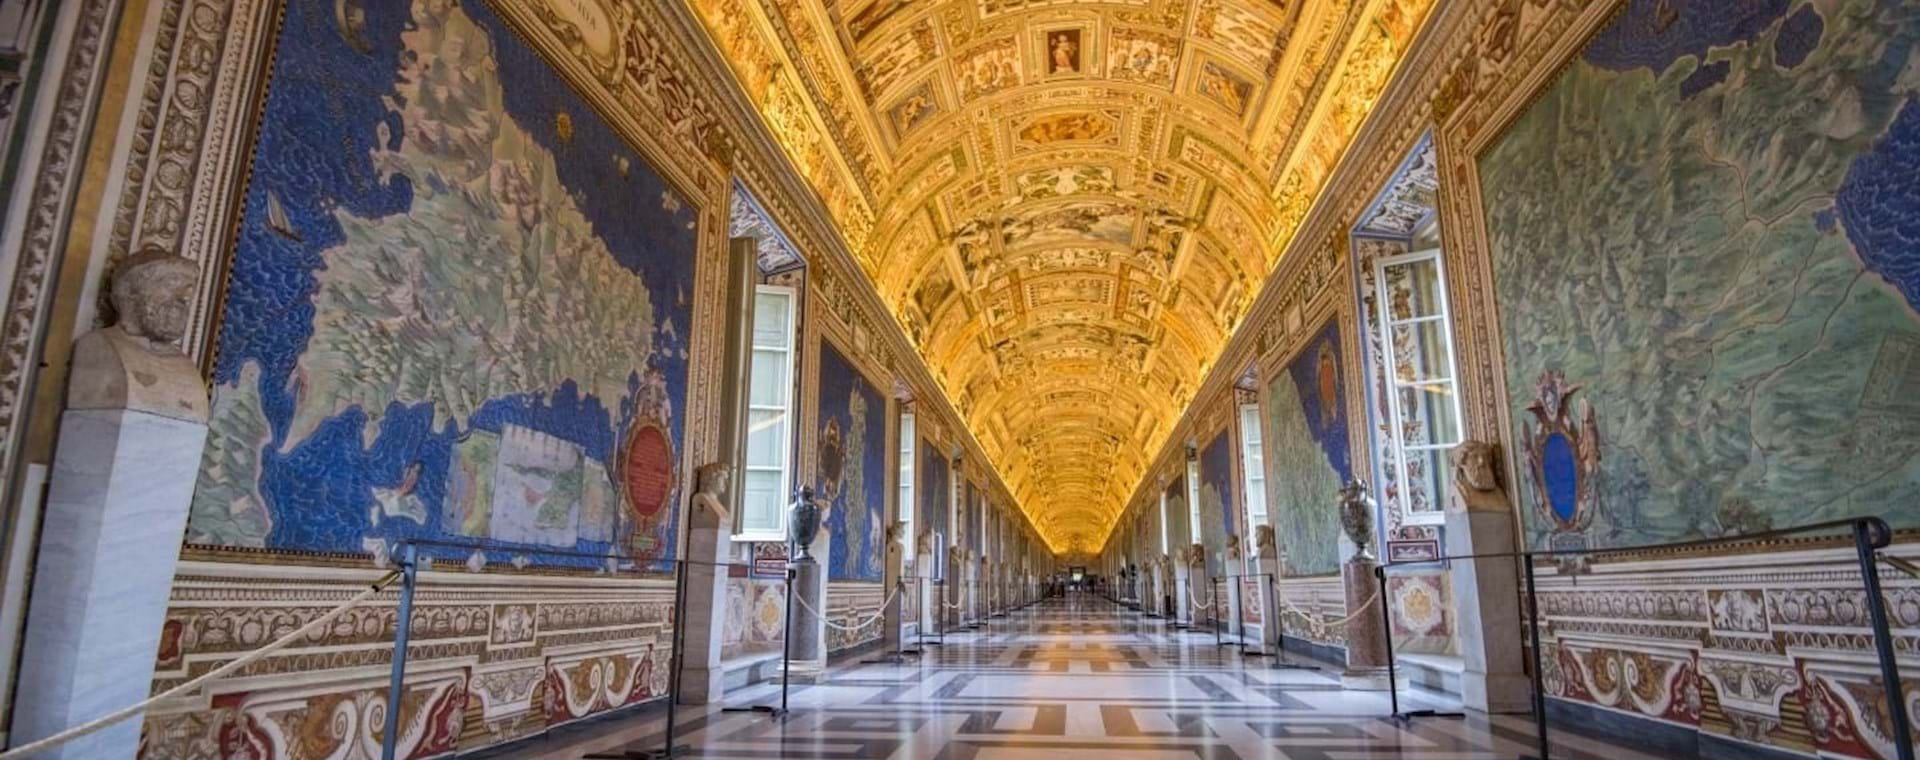 Vatican Museums, Sistine Chapel, & St. Peter's Basilica Tour with Optional Upgrades